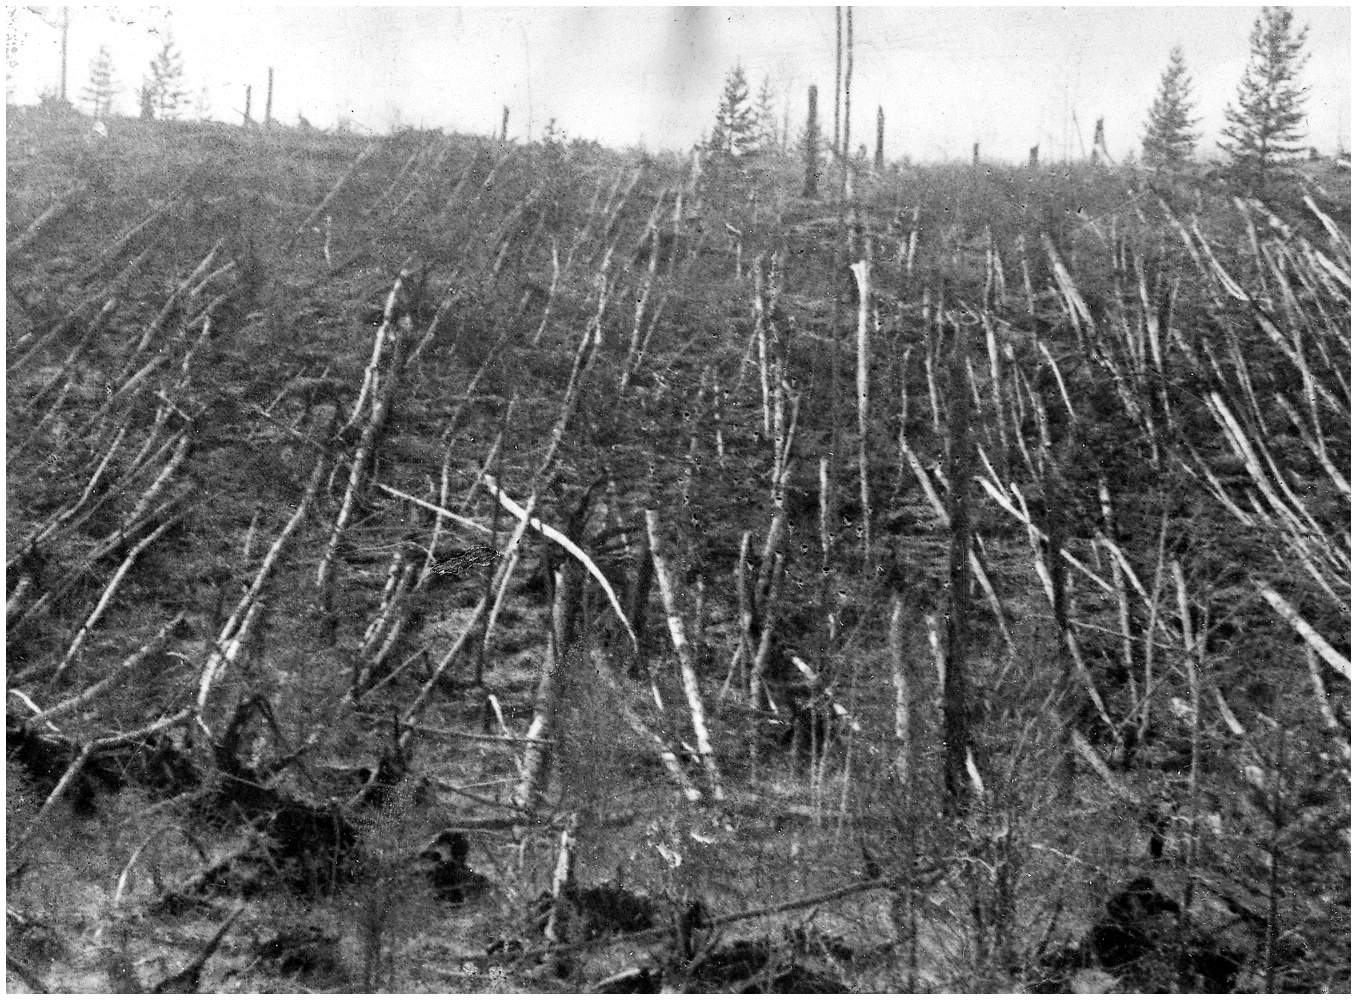 Tunguska event crater may have been located | Science Buzz